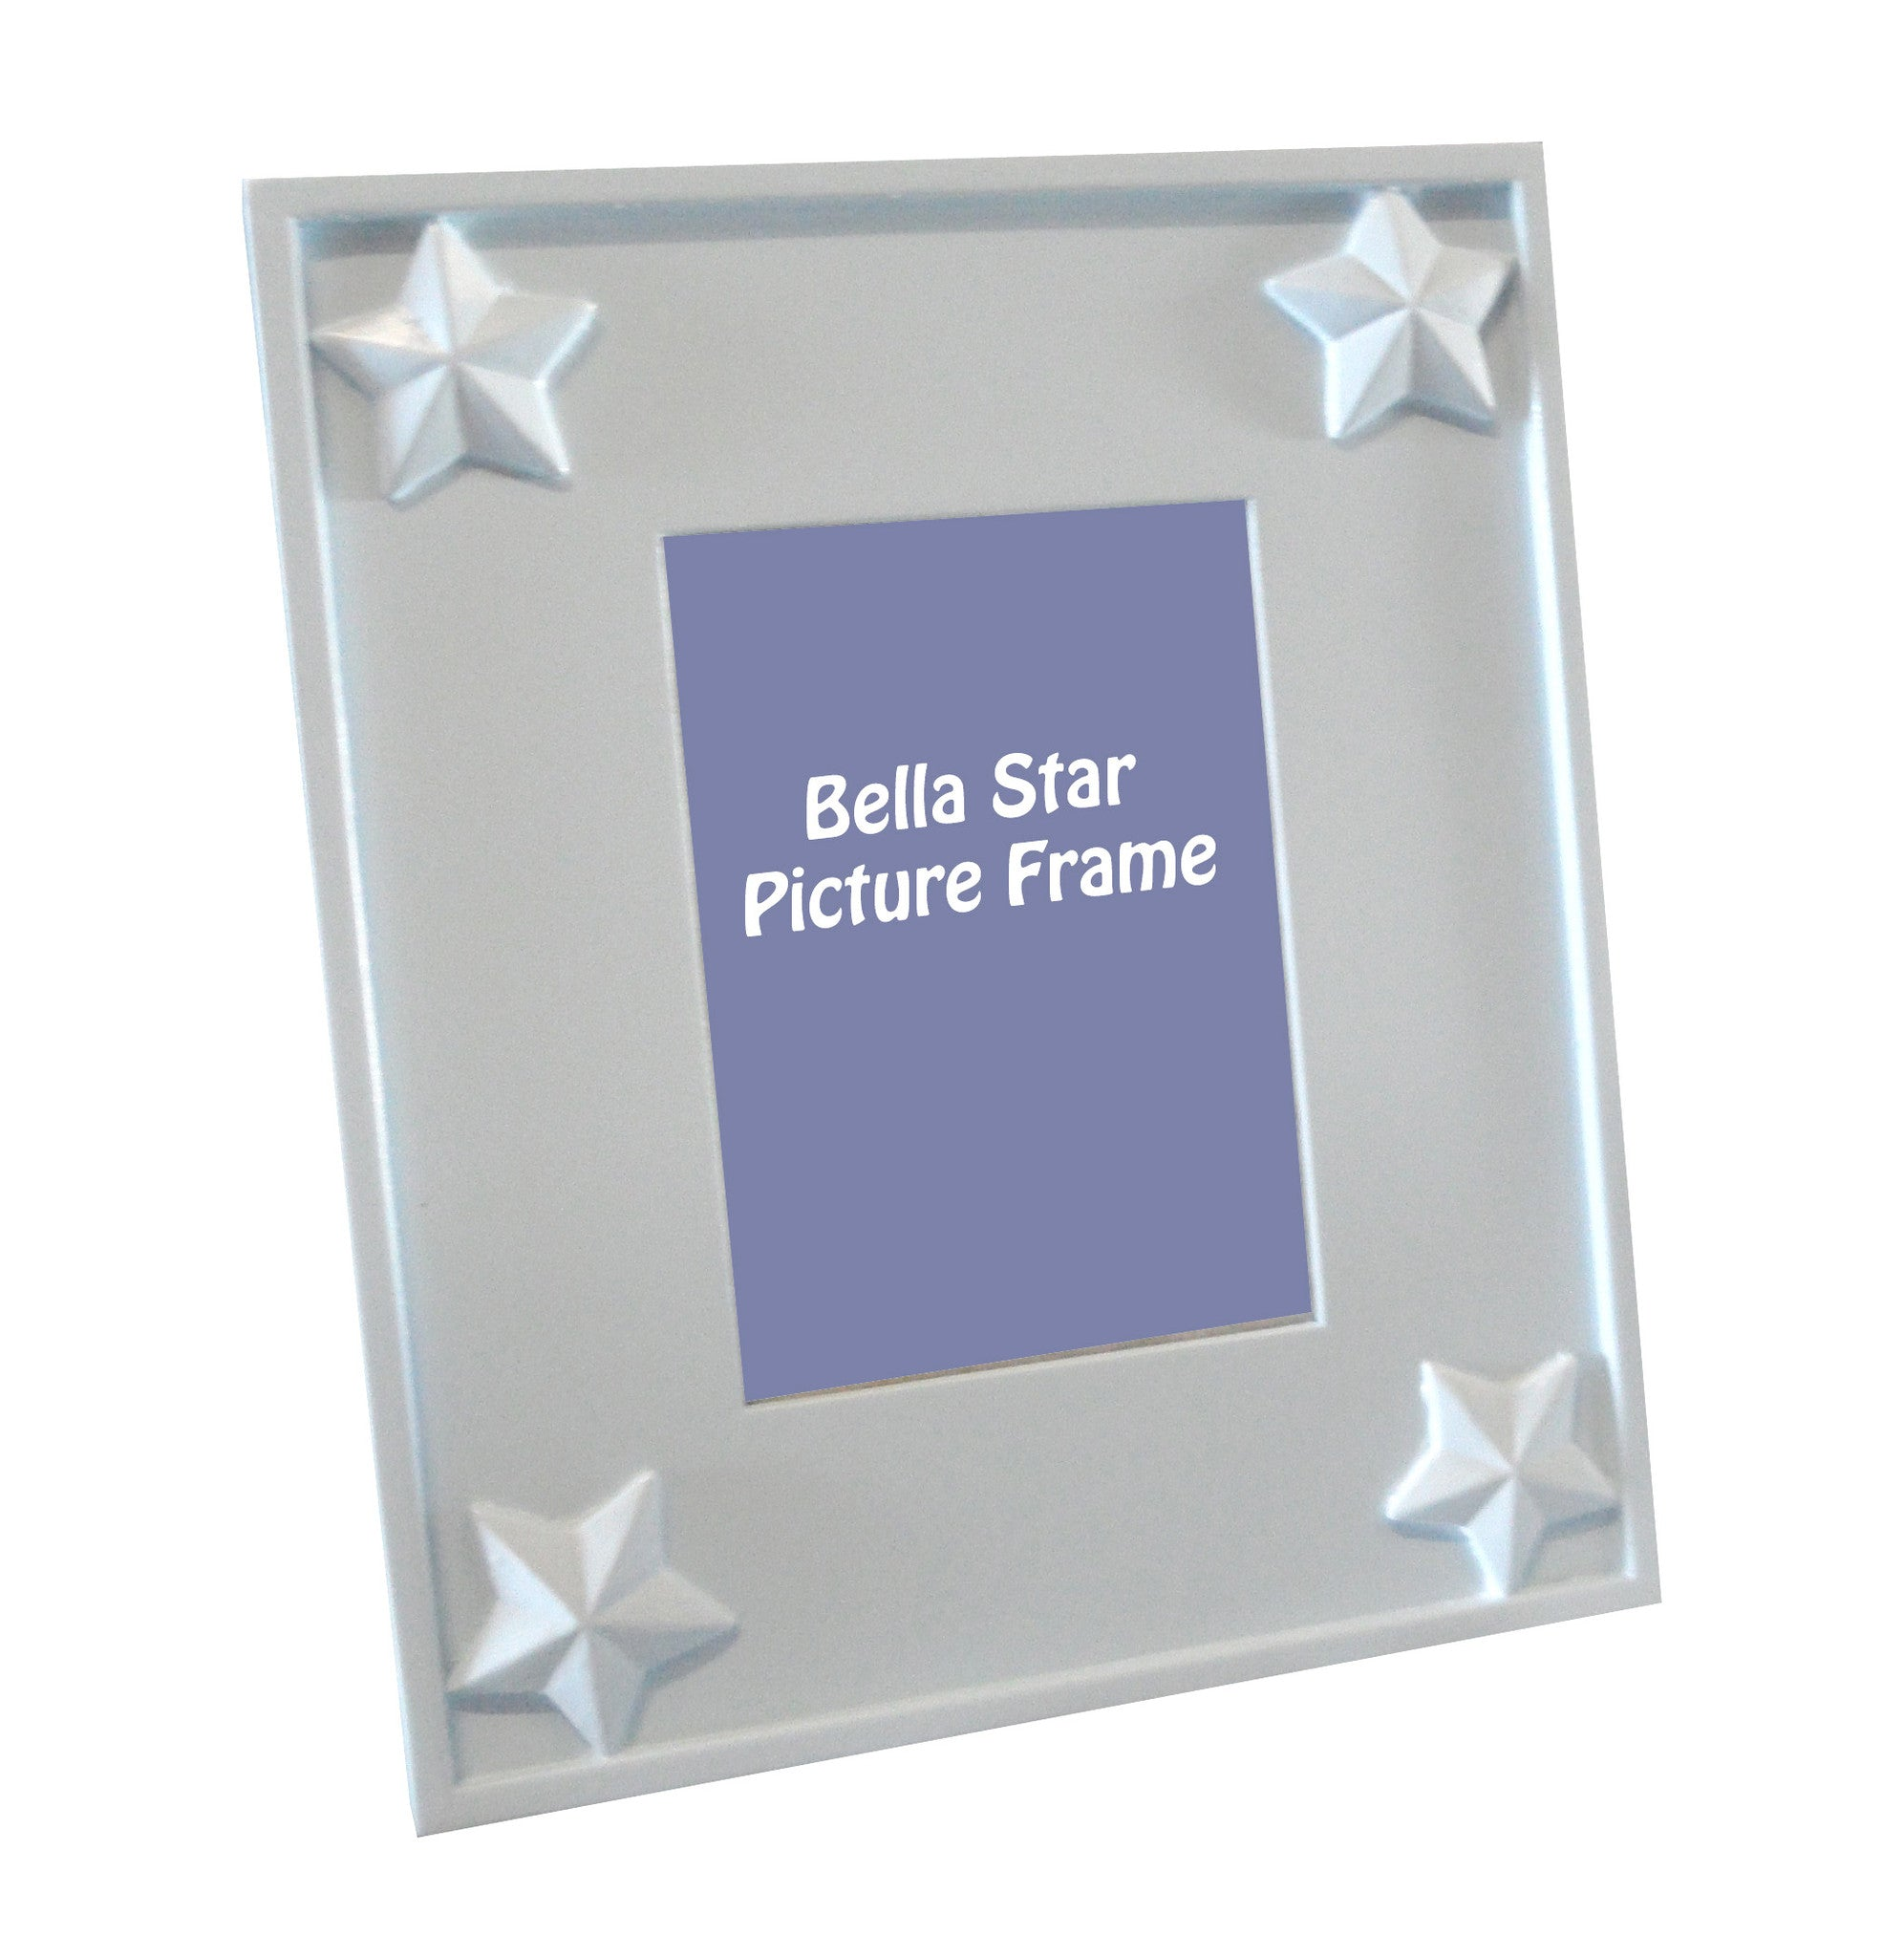 Bella star picture frame